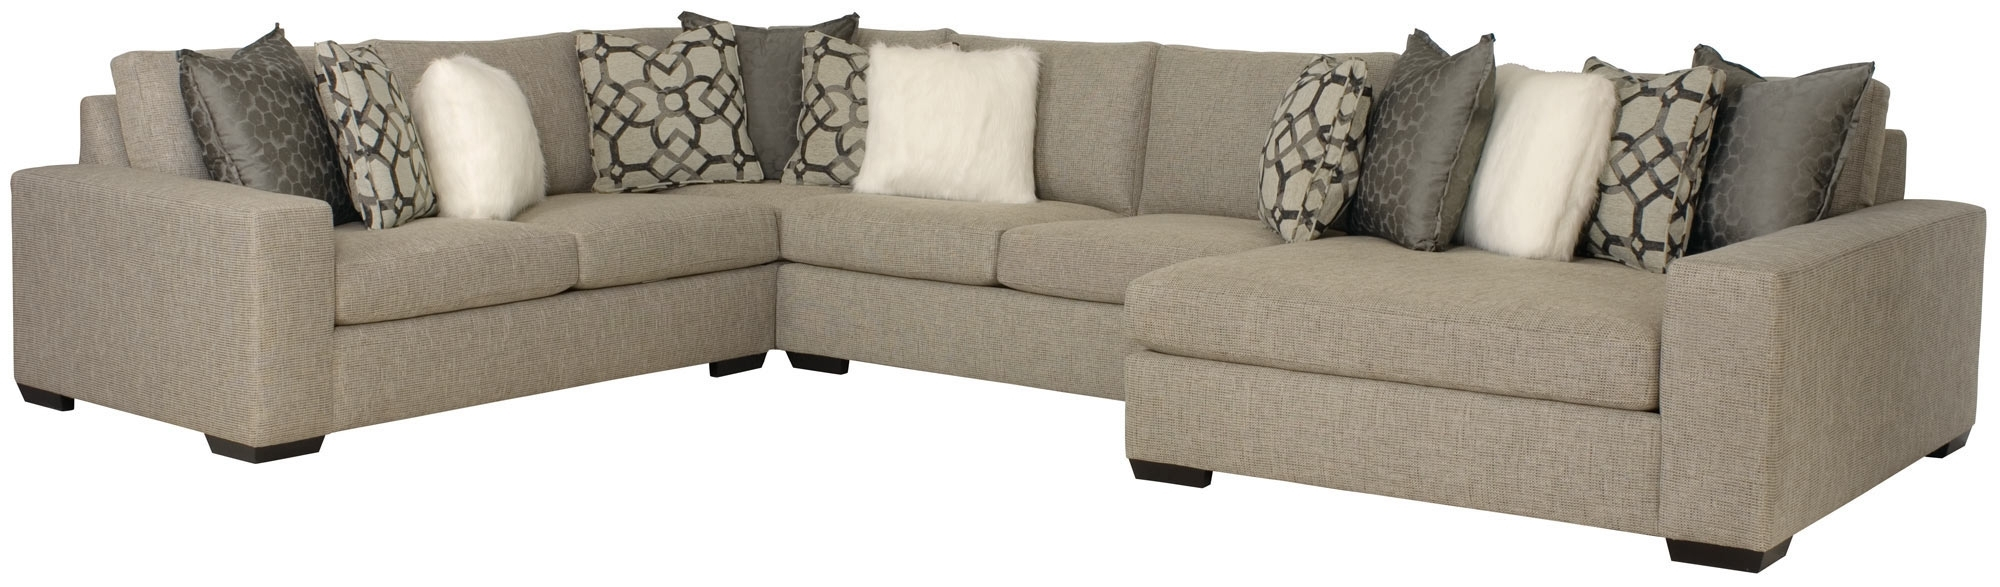 Bernhardt Inside Current Orlando Sectional Sofas (View 2 of 15)